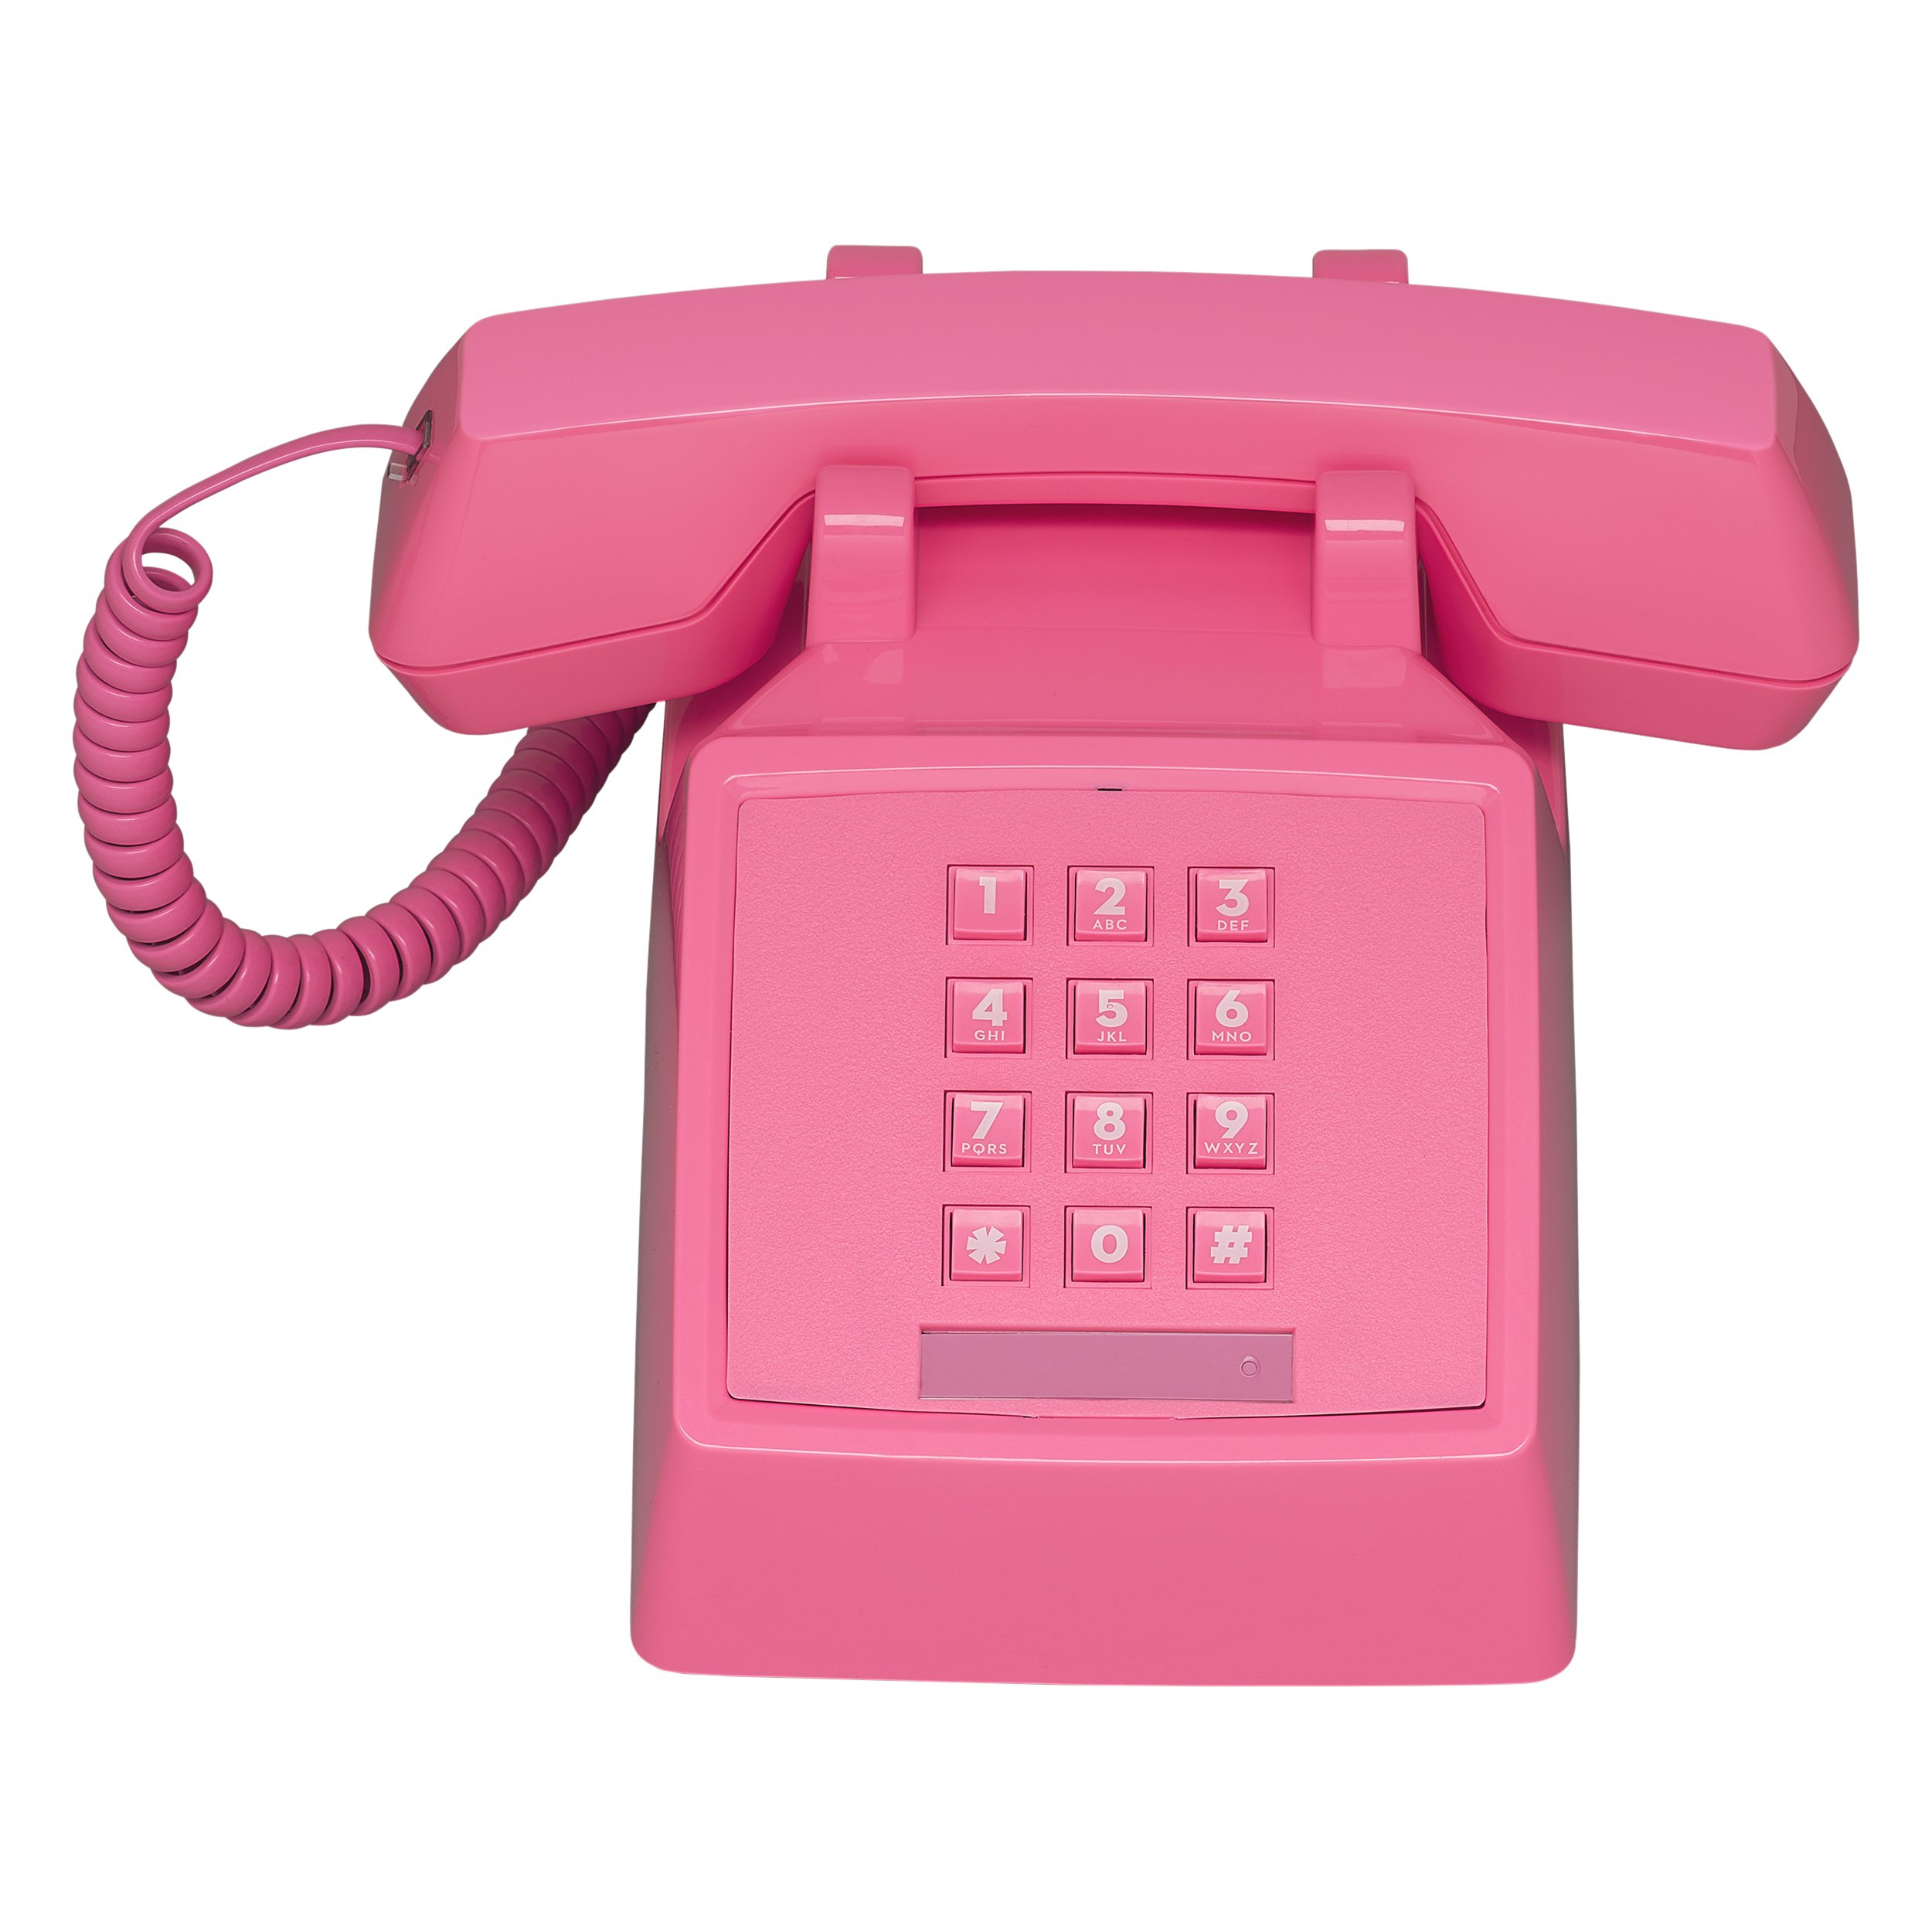 Wild Wood 2500 Classic Retro 1980s Style Corded Landline Phone with Push Buttons, Flamingo Pink by Wild Wood